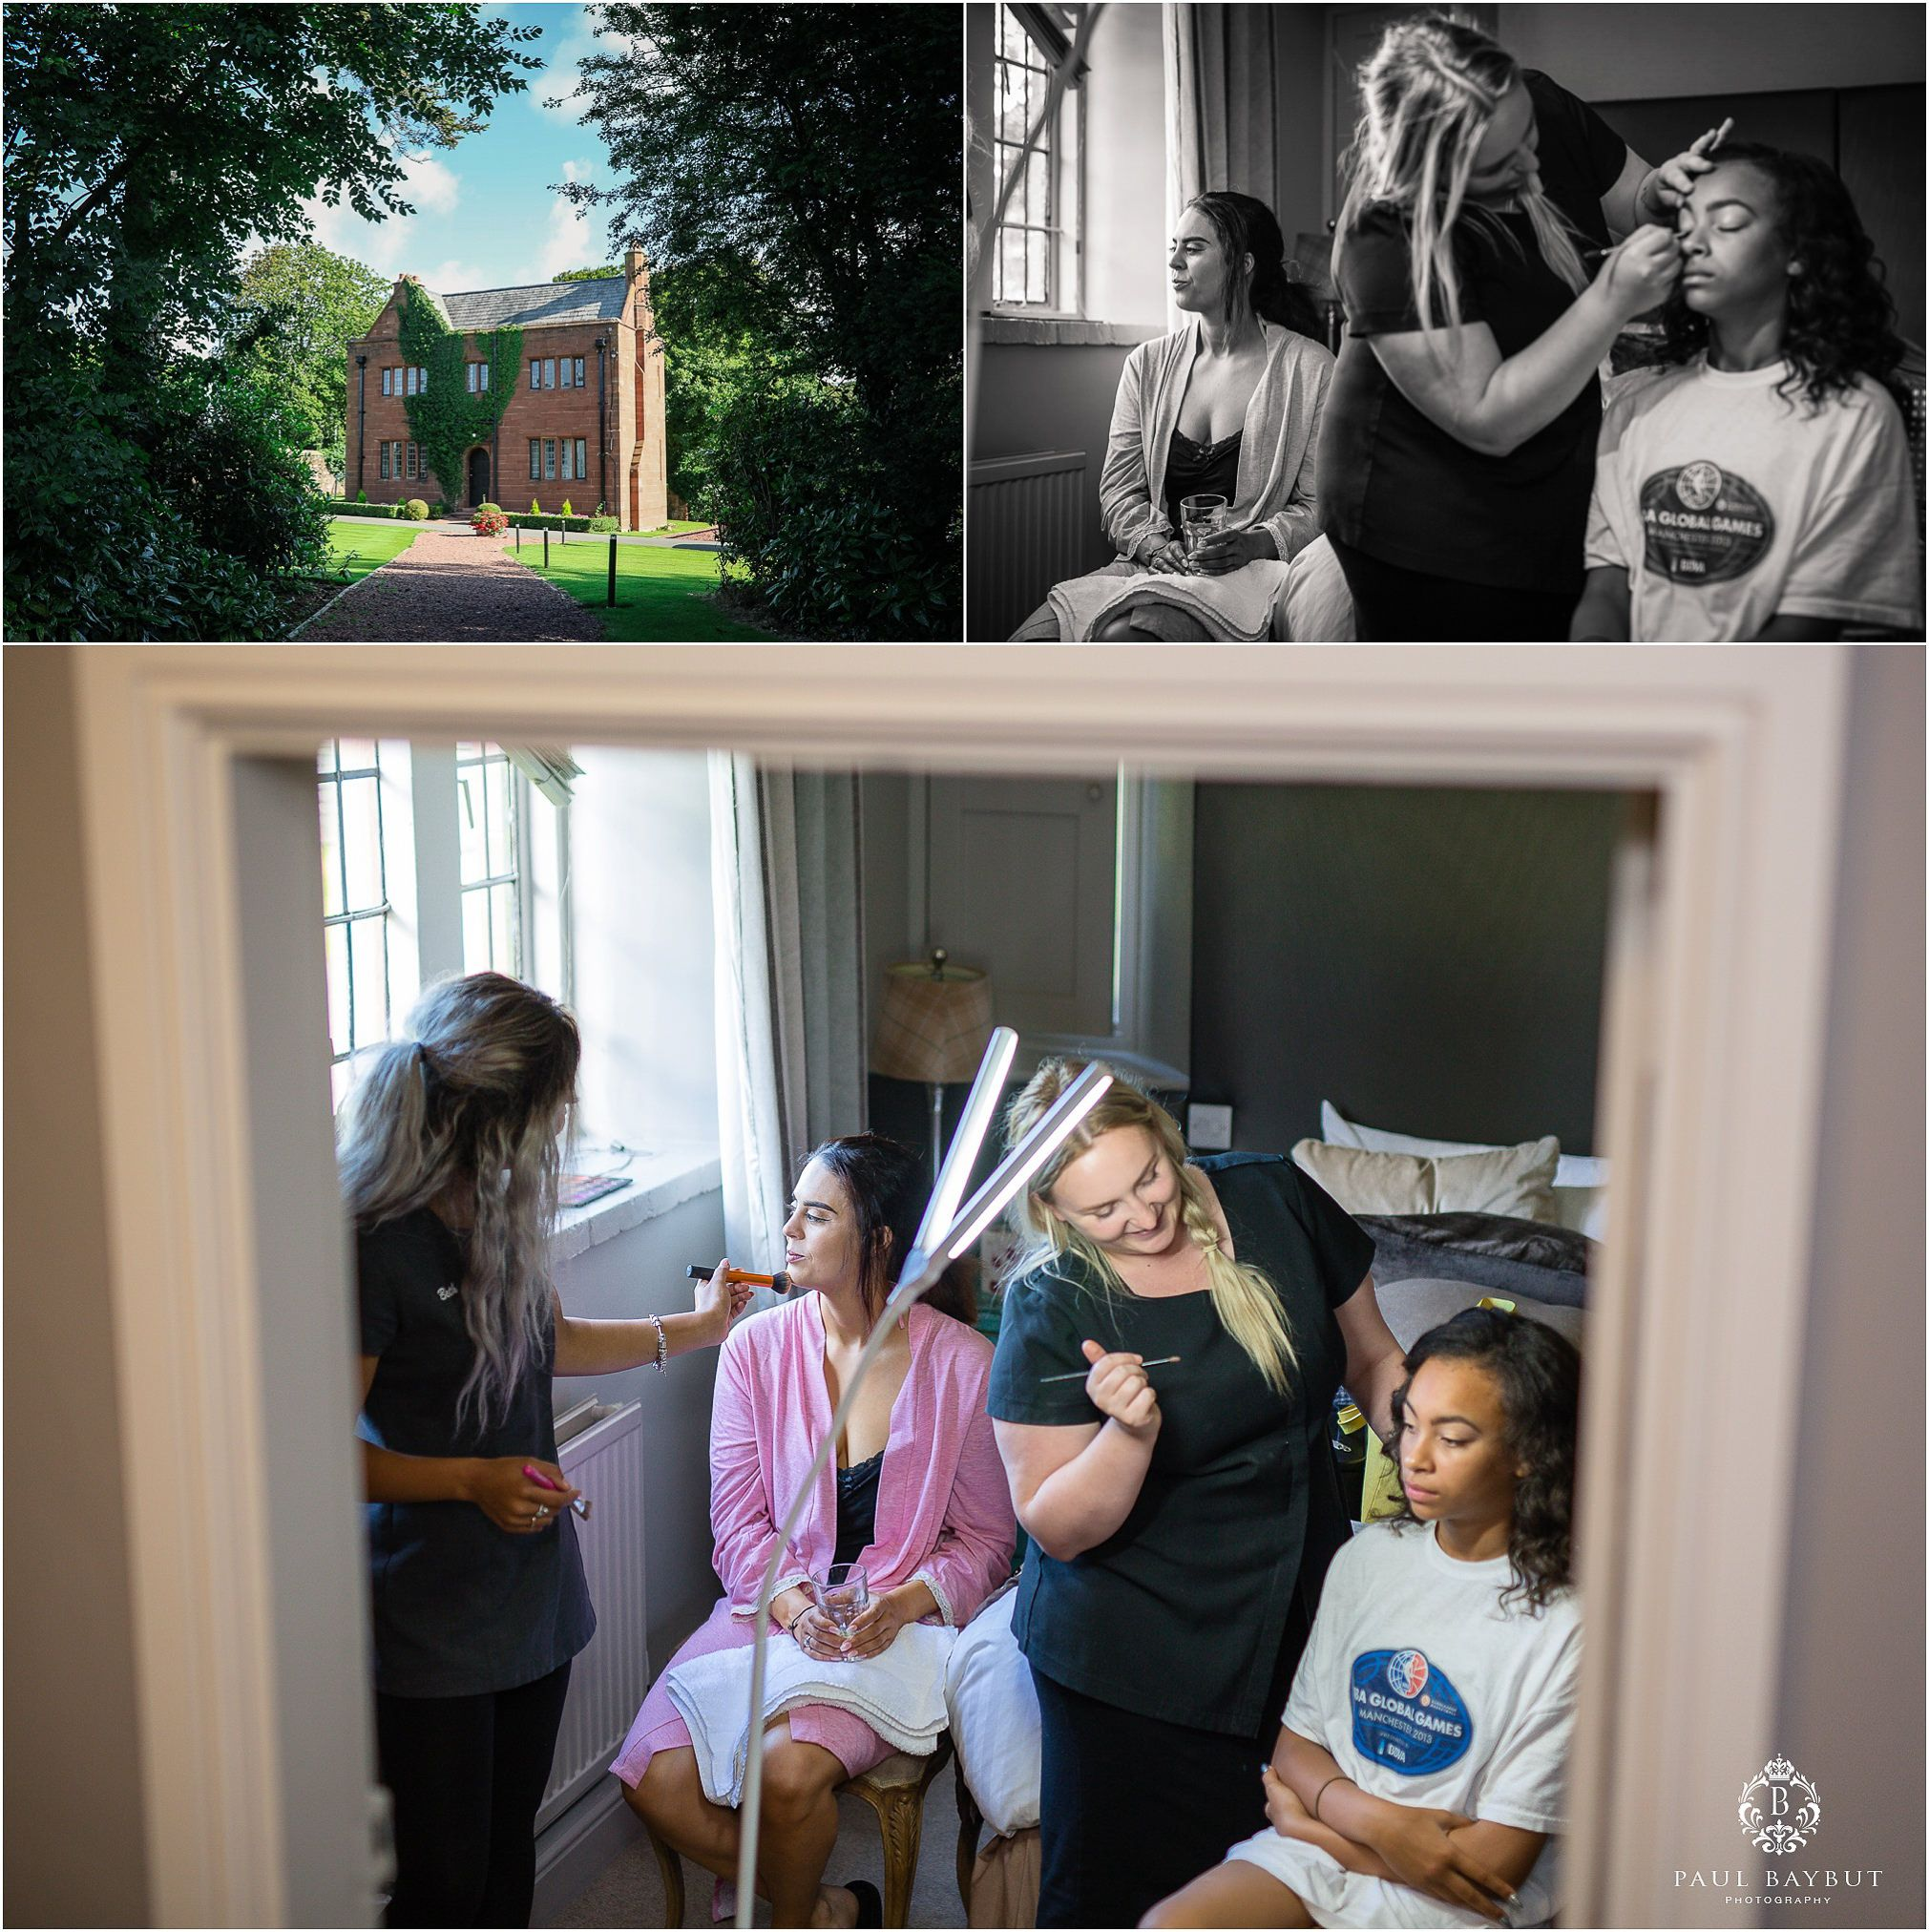 Abbey house exterior building in summer and interior scenes of young bridesmaids having their hair and makeup done